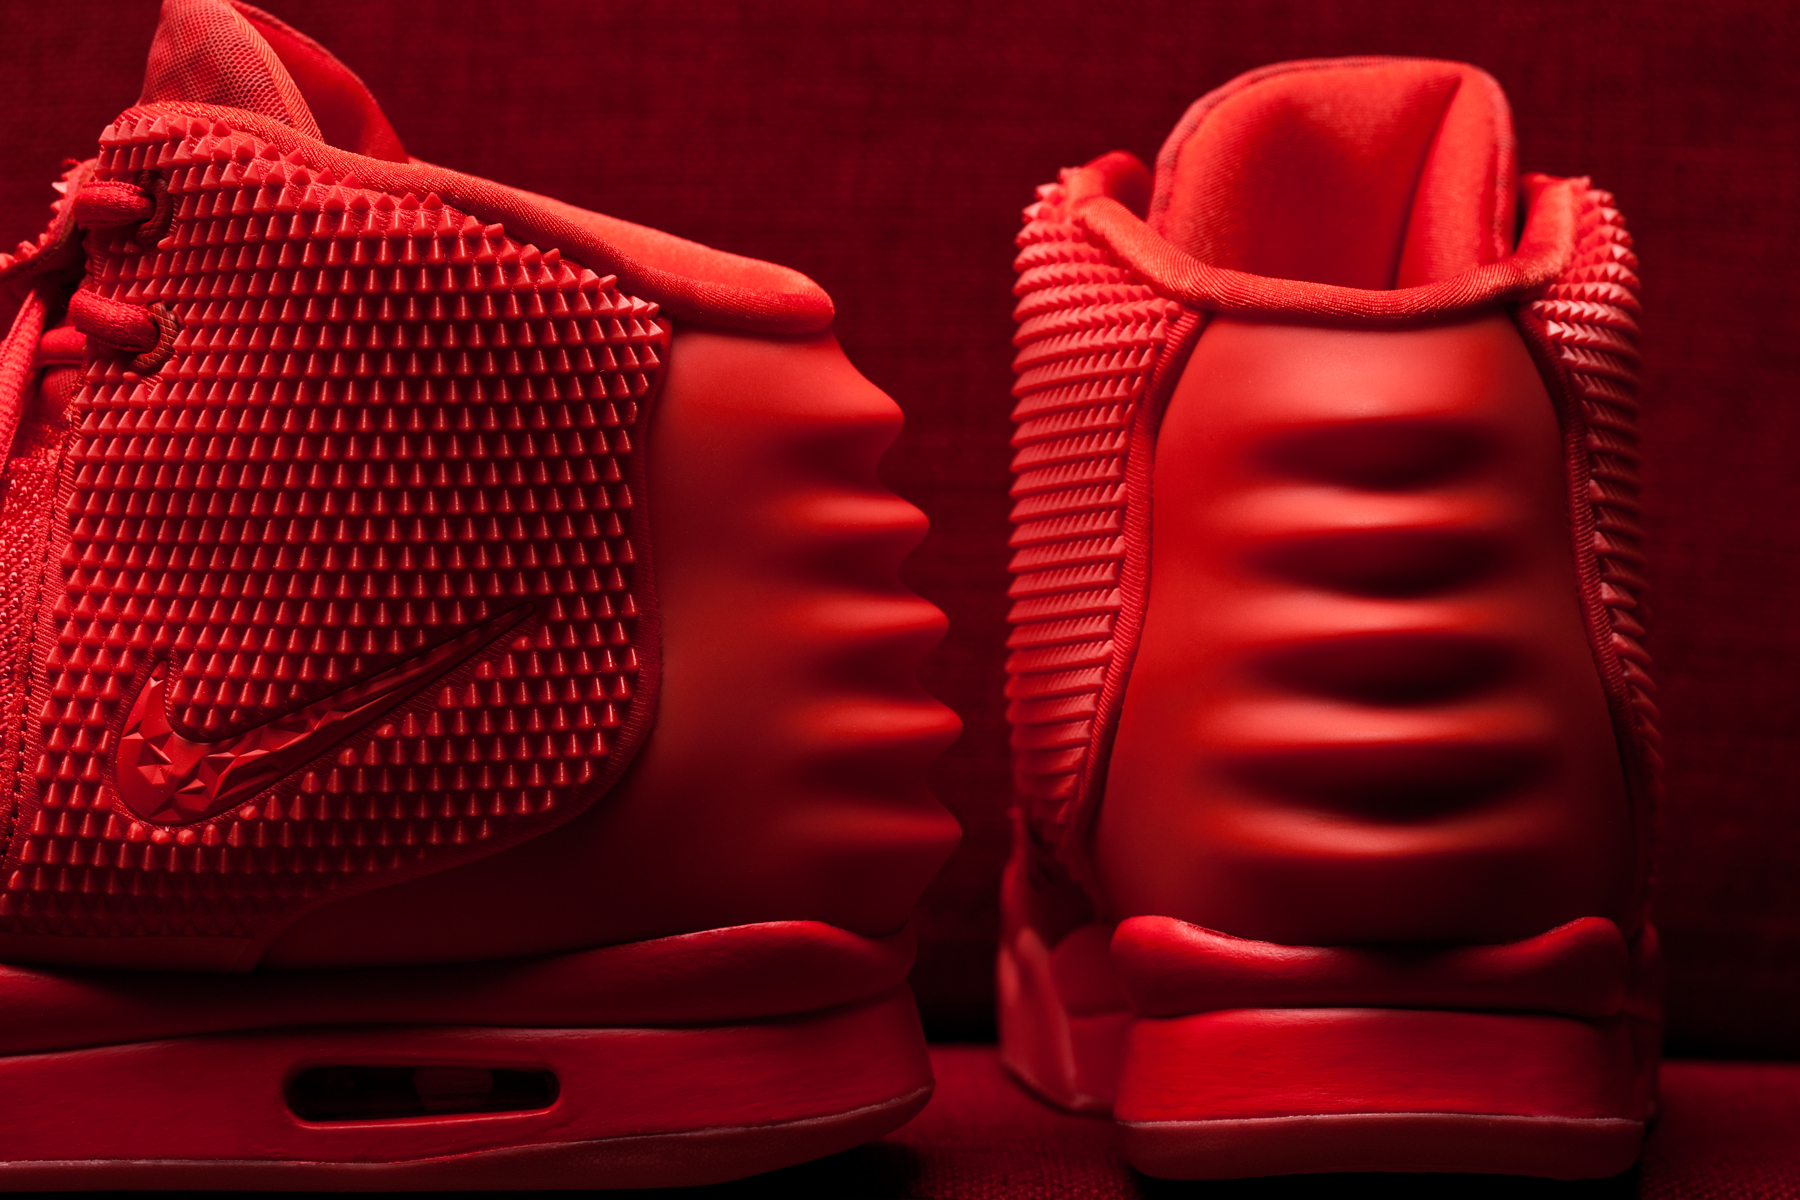 http://hypebeast.com/2014/2/reselling-the-yeezy-2-speculating-prices-with-ben-baller-and-flight-club